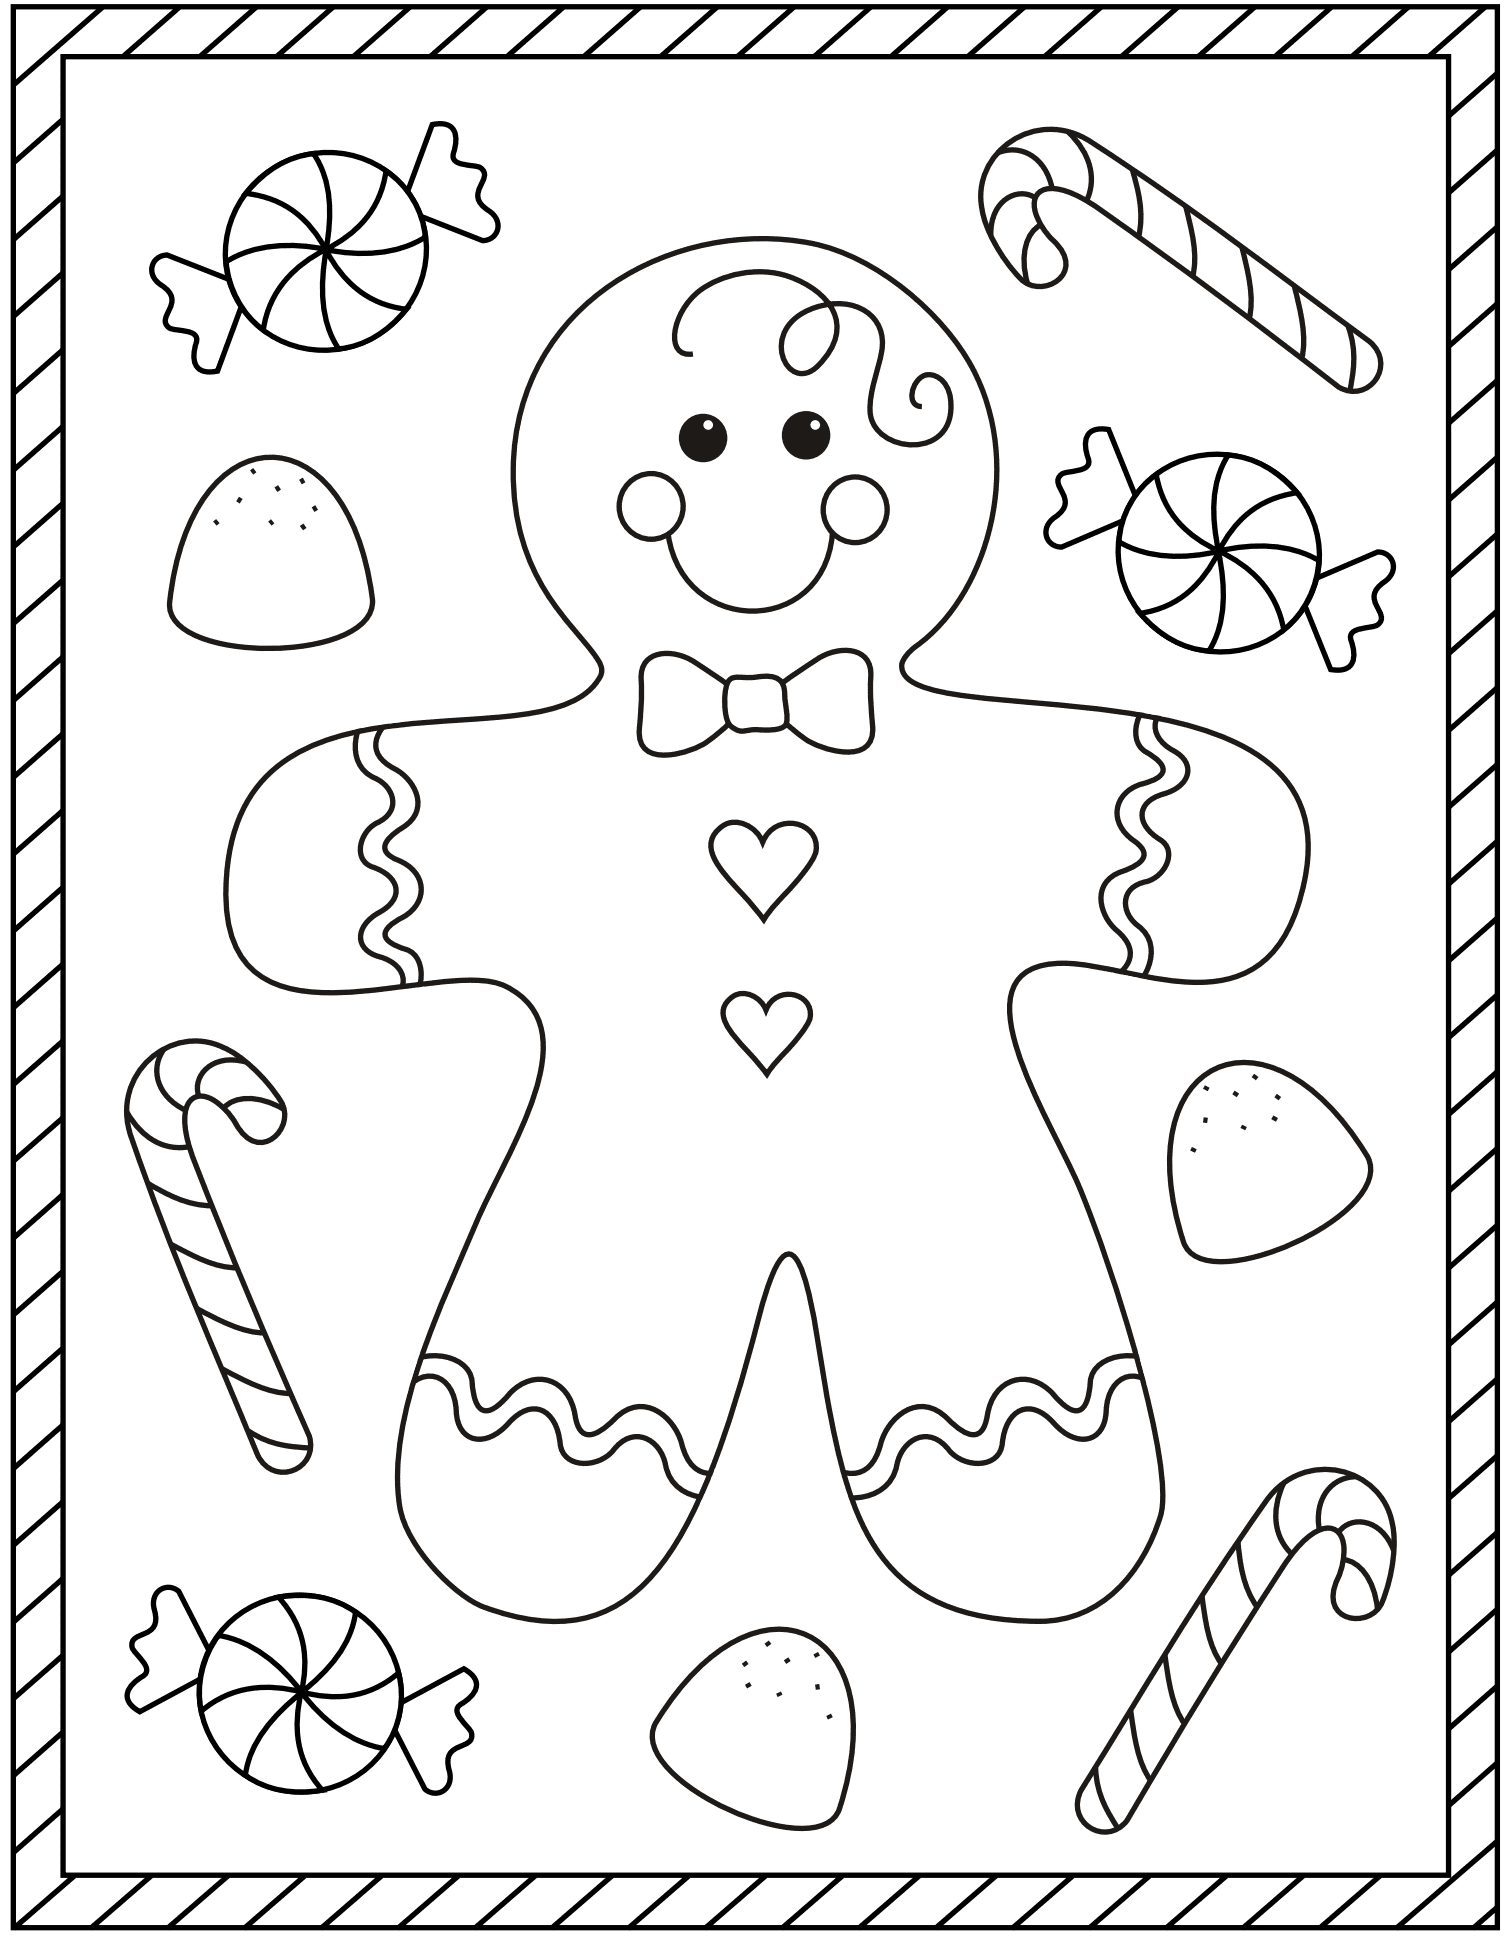 Printable Christmas Colouring Pages With Images